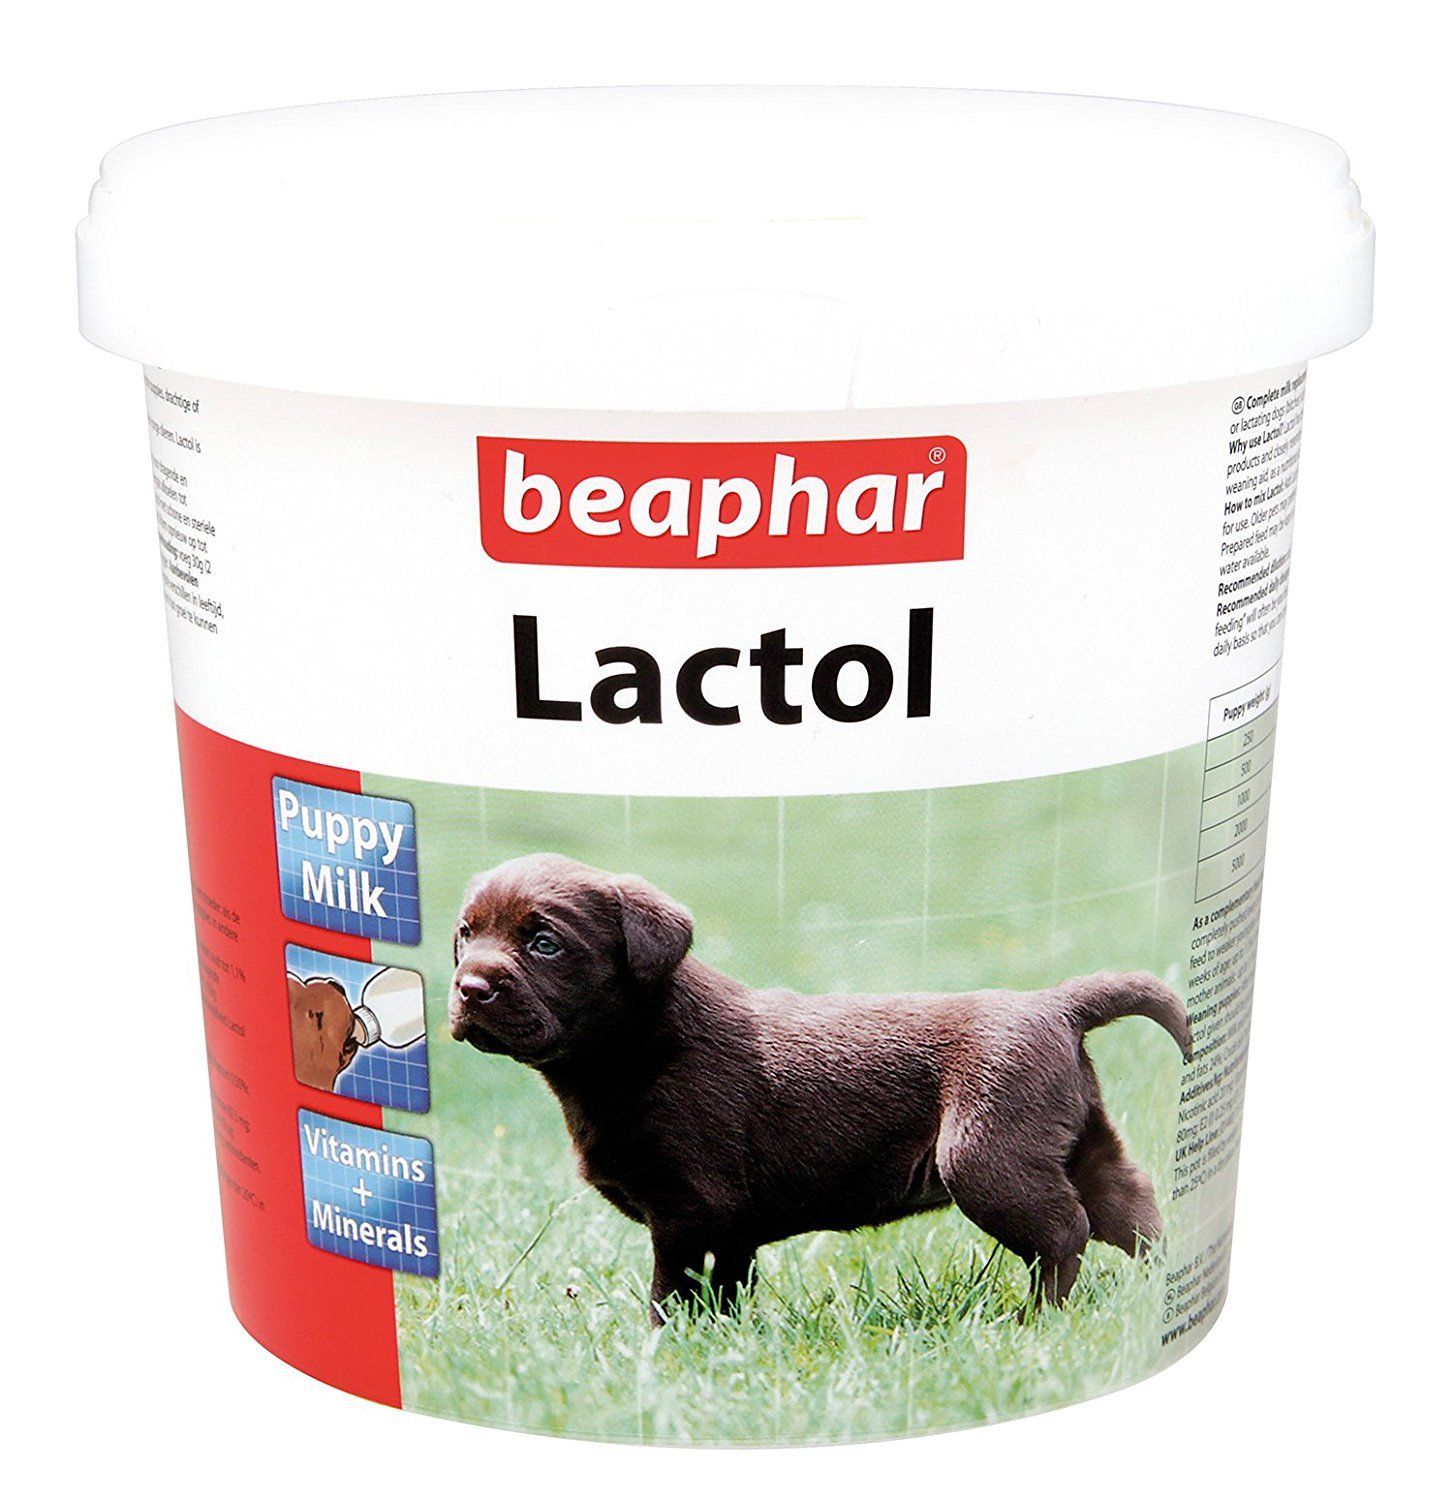 BEAPHAR LACTOL PUPPY DOG CAT MILK FORTIFIED VITAMIN MILK POWDER 1.5kg WHELPING